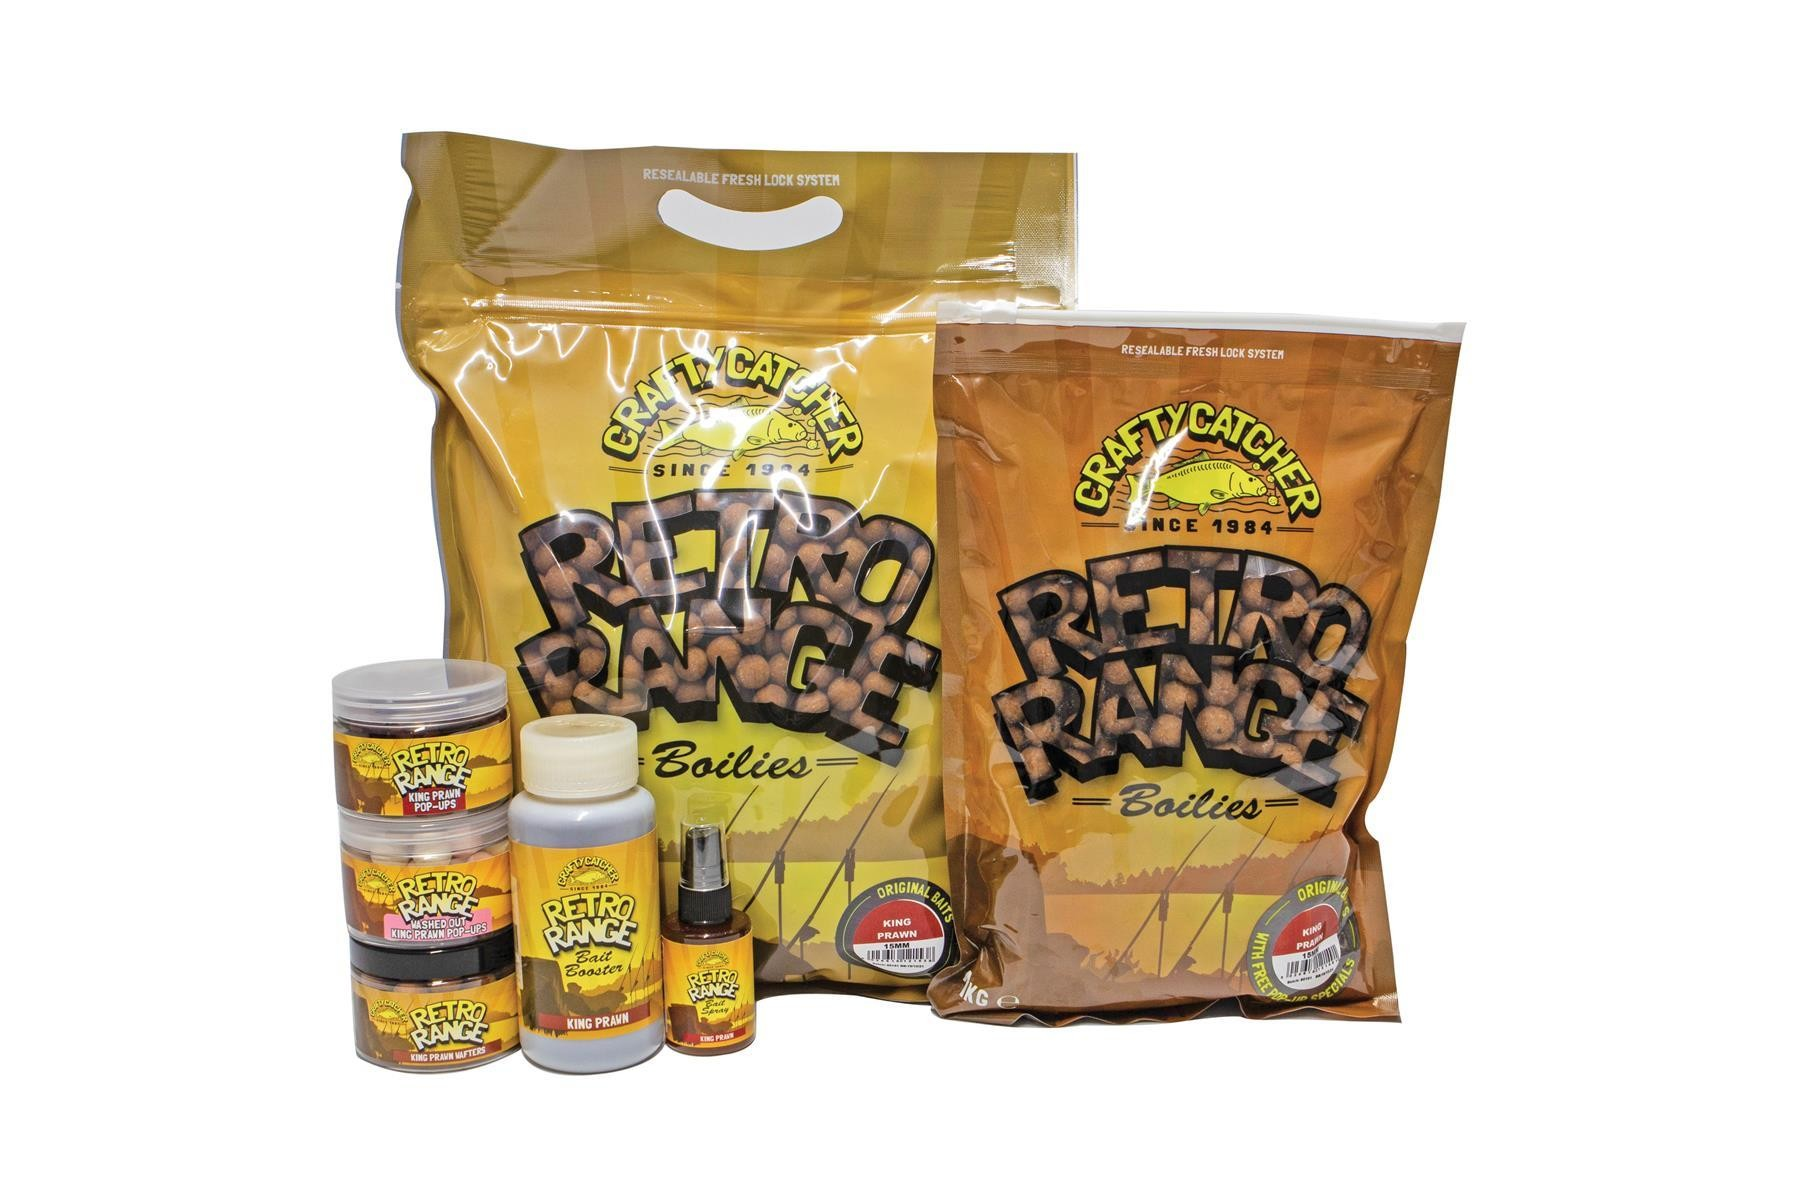 Crafty Catcher Retro Range King Prawn Bundle Boilies & Liquids 2.5kg